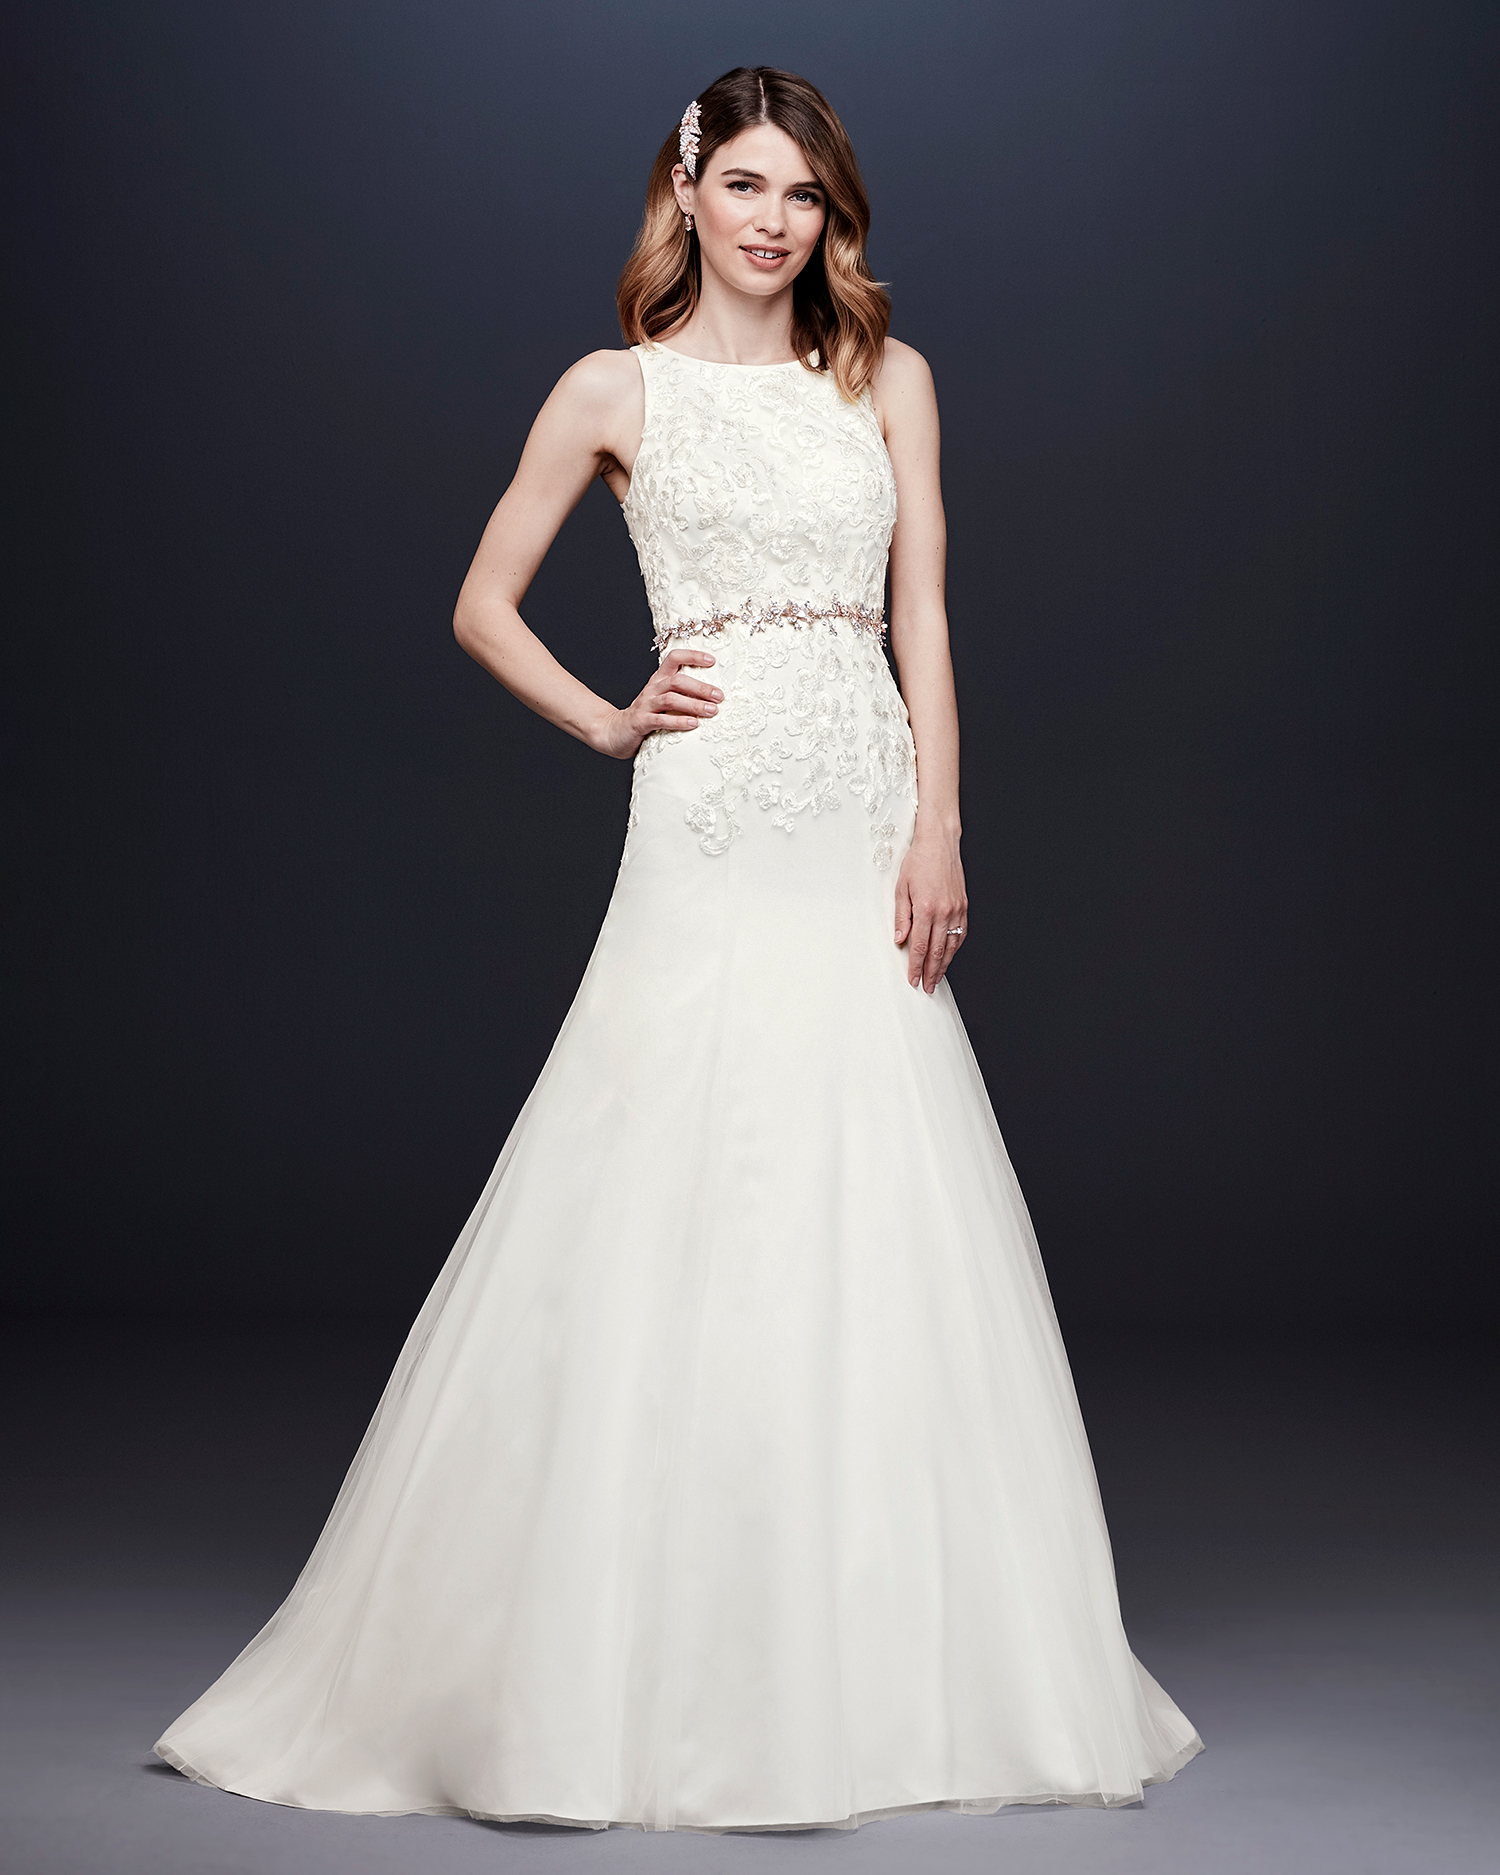 davids bridal wedding dress fall 2019 high-neck a-line with belt